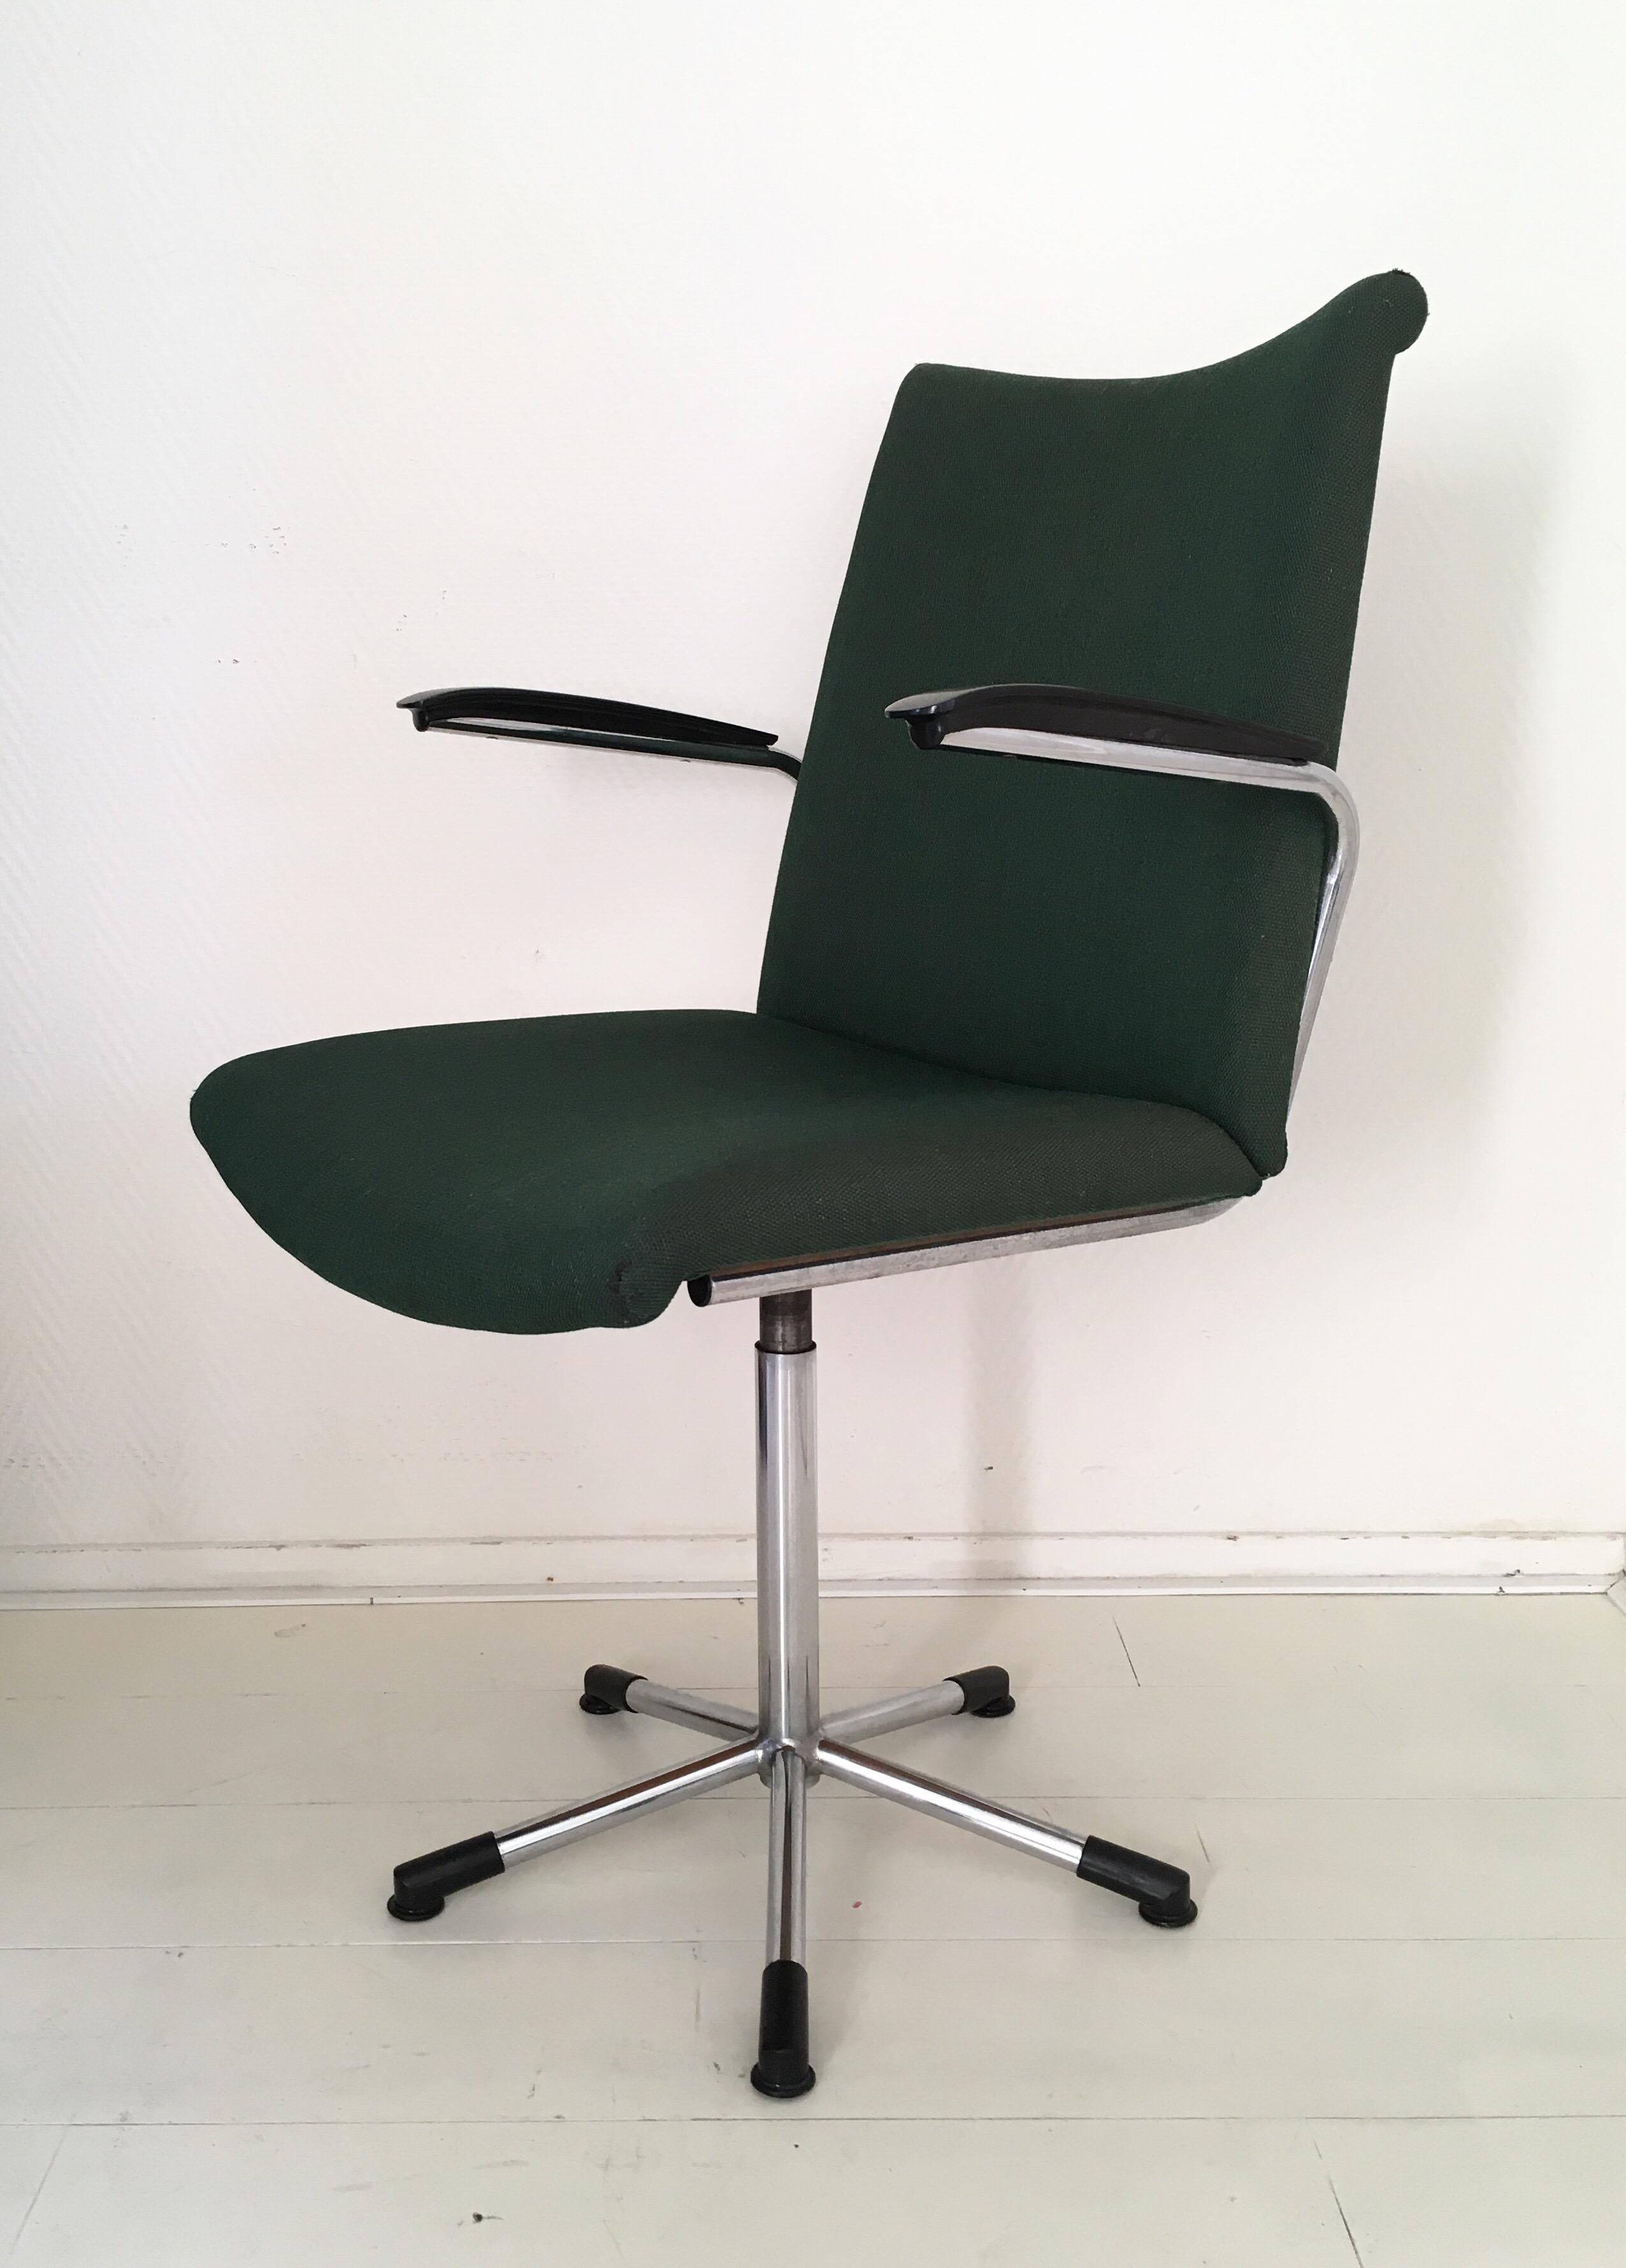 Minimalist Desk Chair Moss Green Desk Chair Model 3314 By De Wit Schiedam 1960s